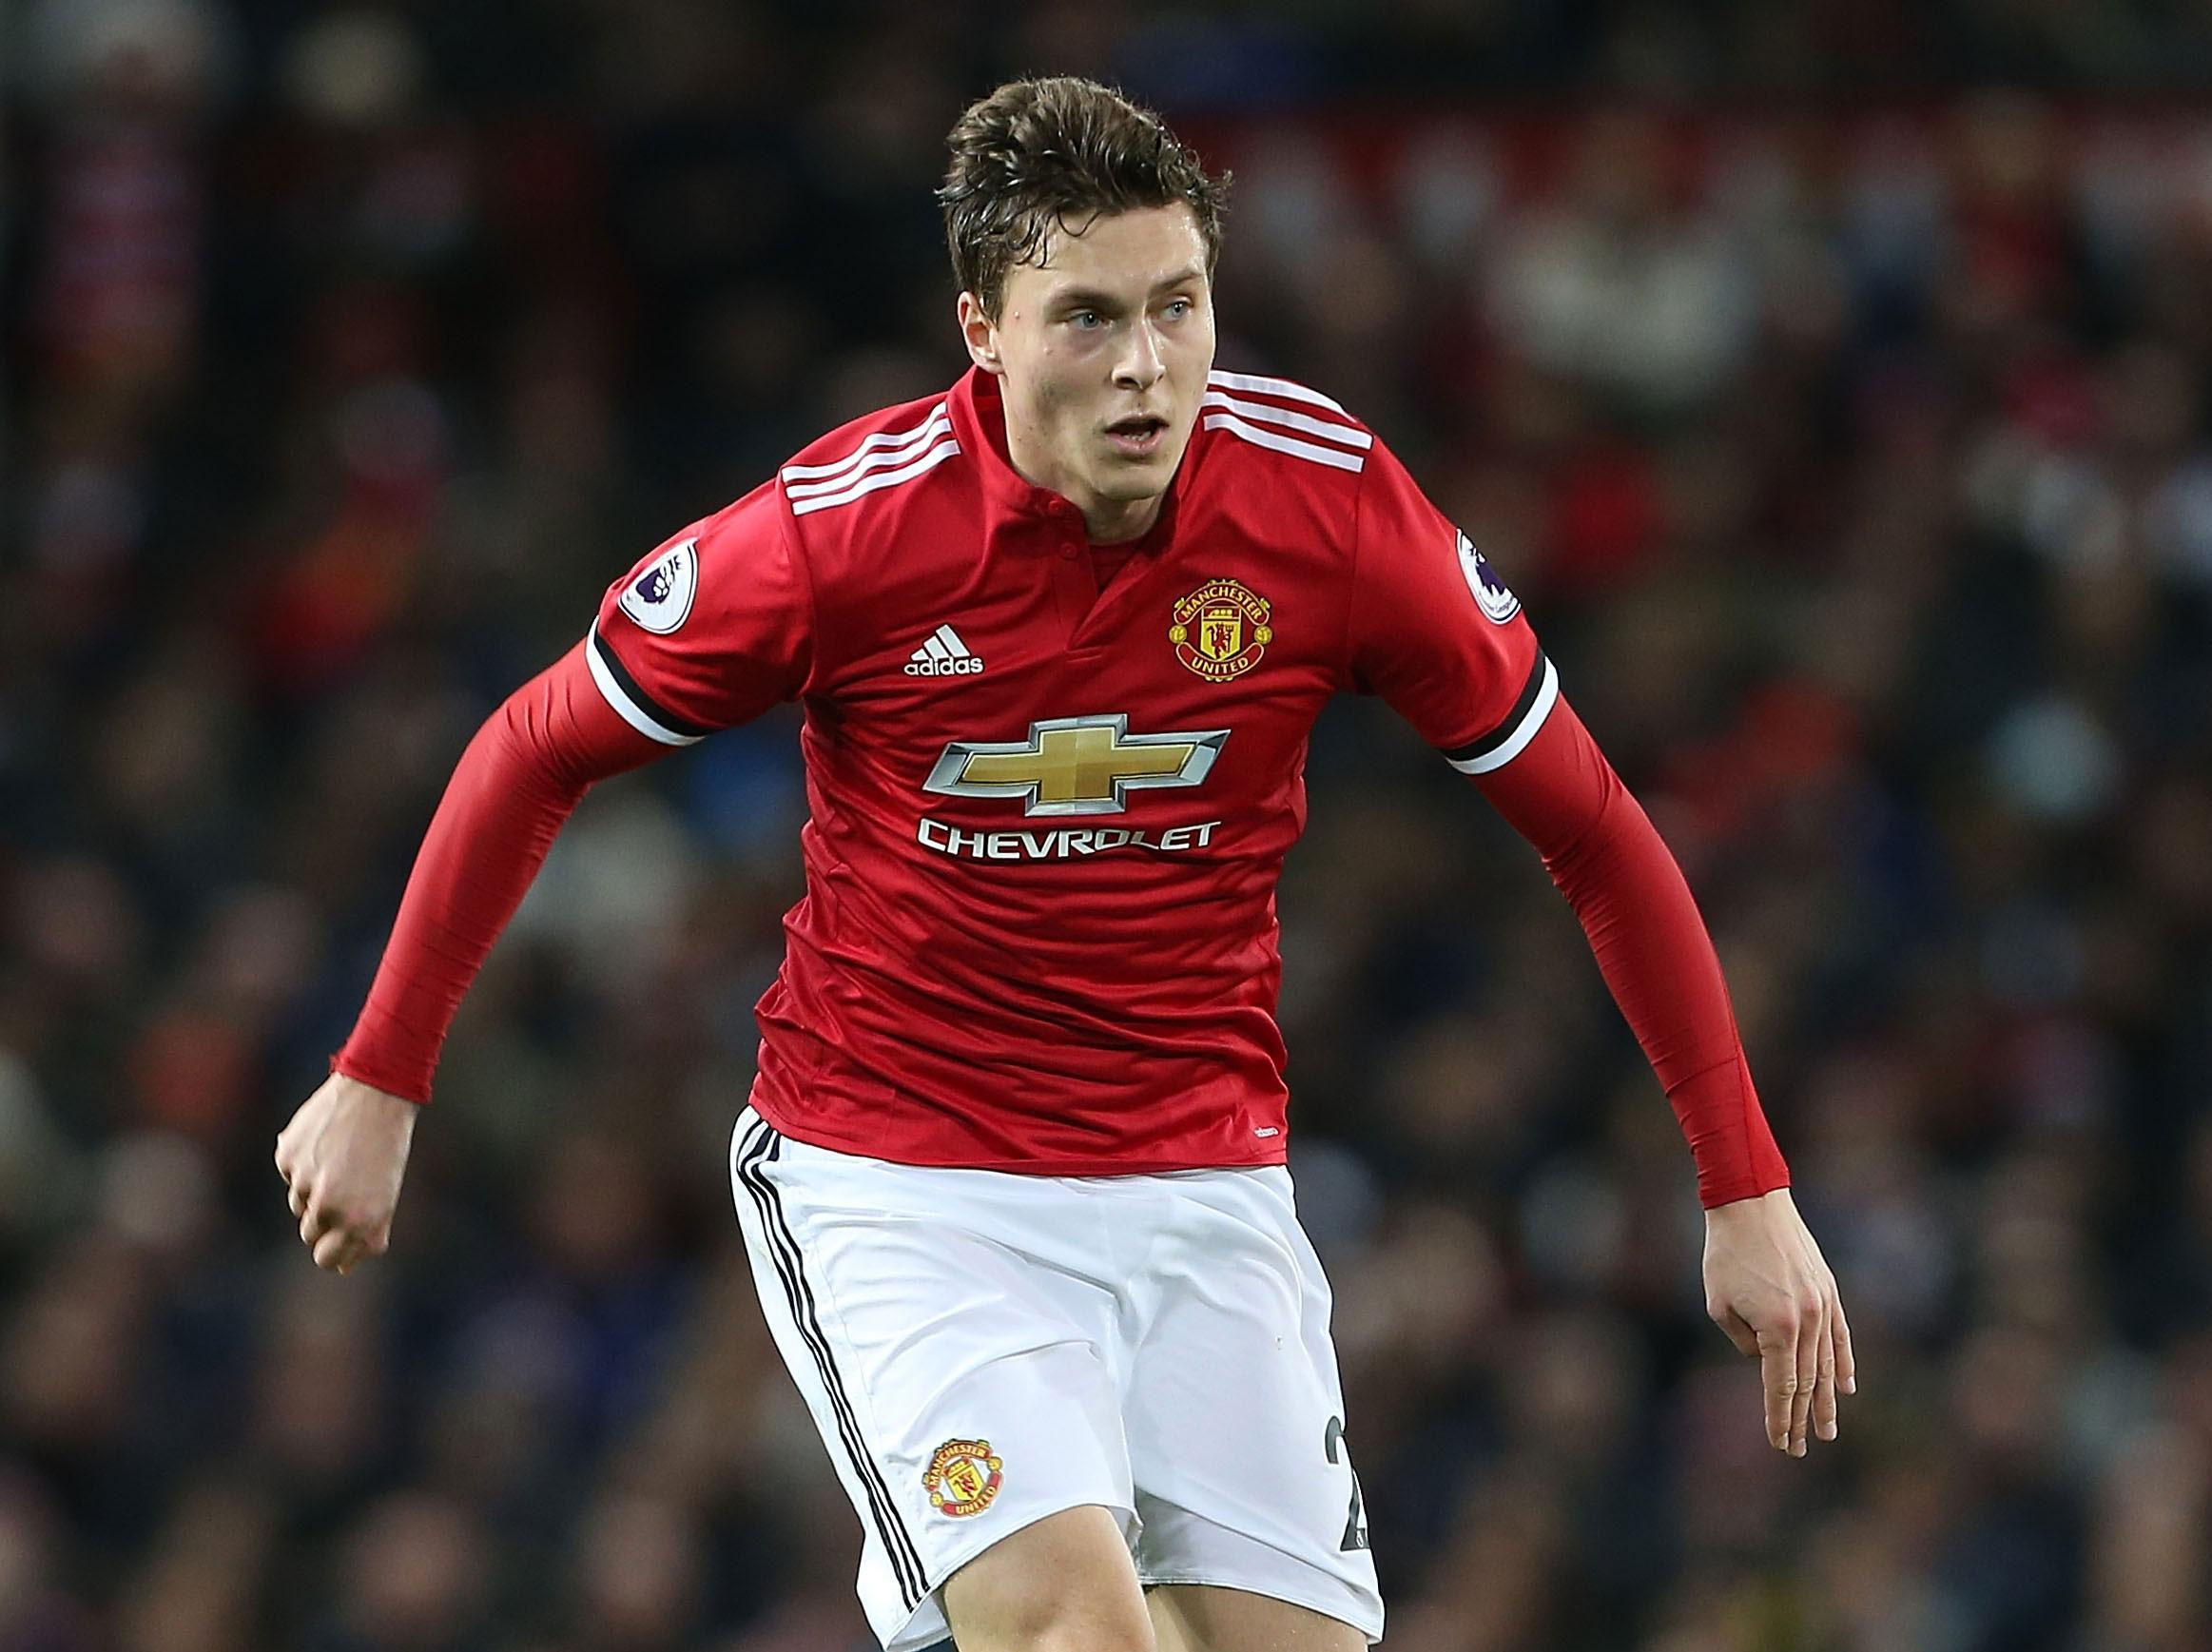 Jose mourinho singles out victor lindelof for praise after - Victor lindelof ...